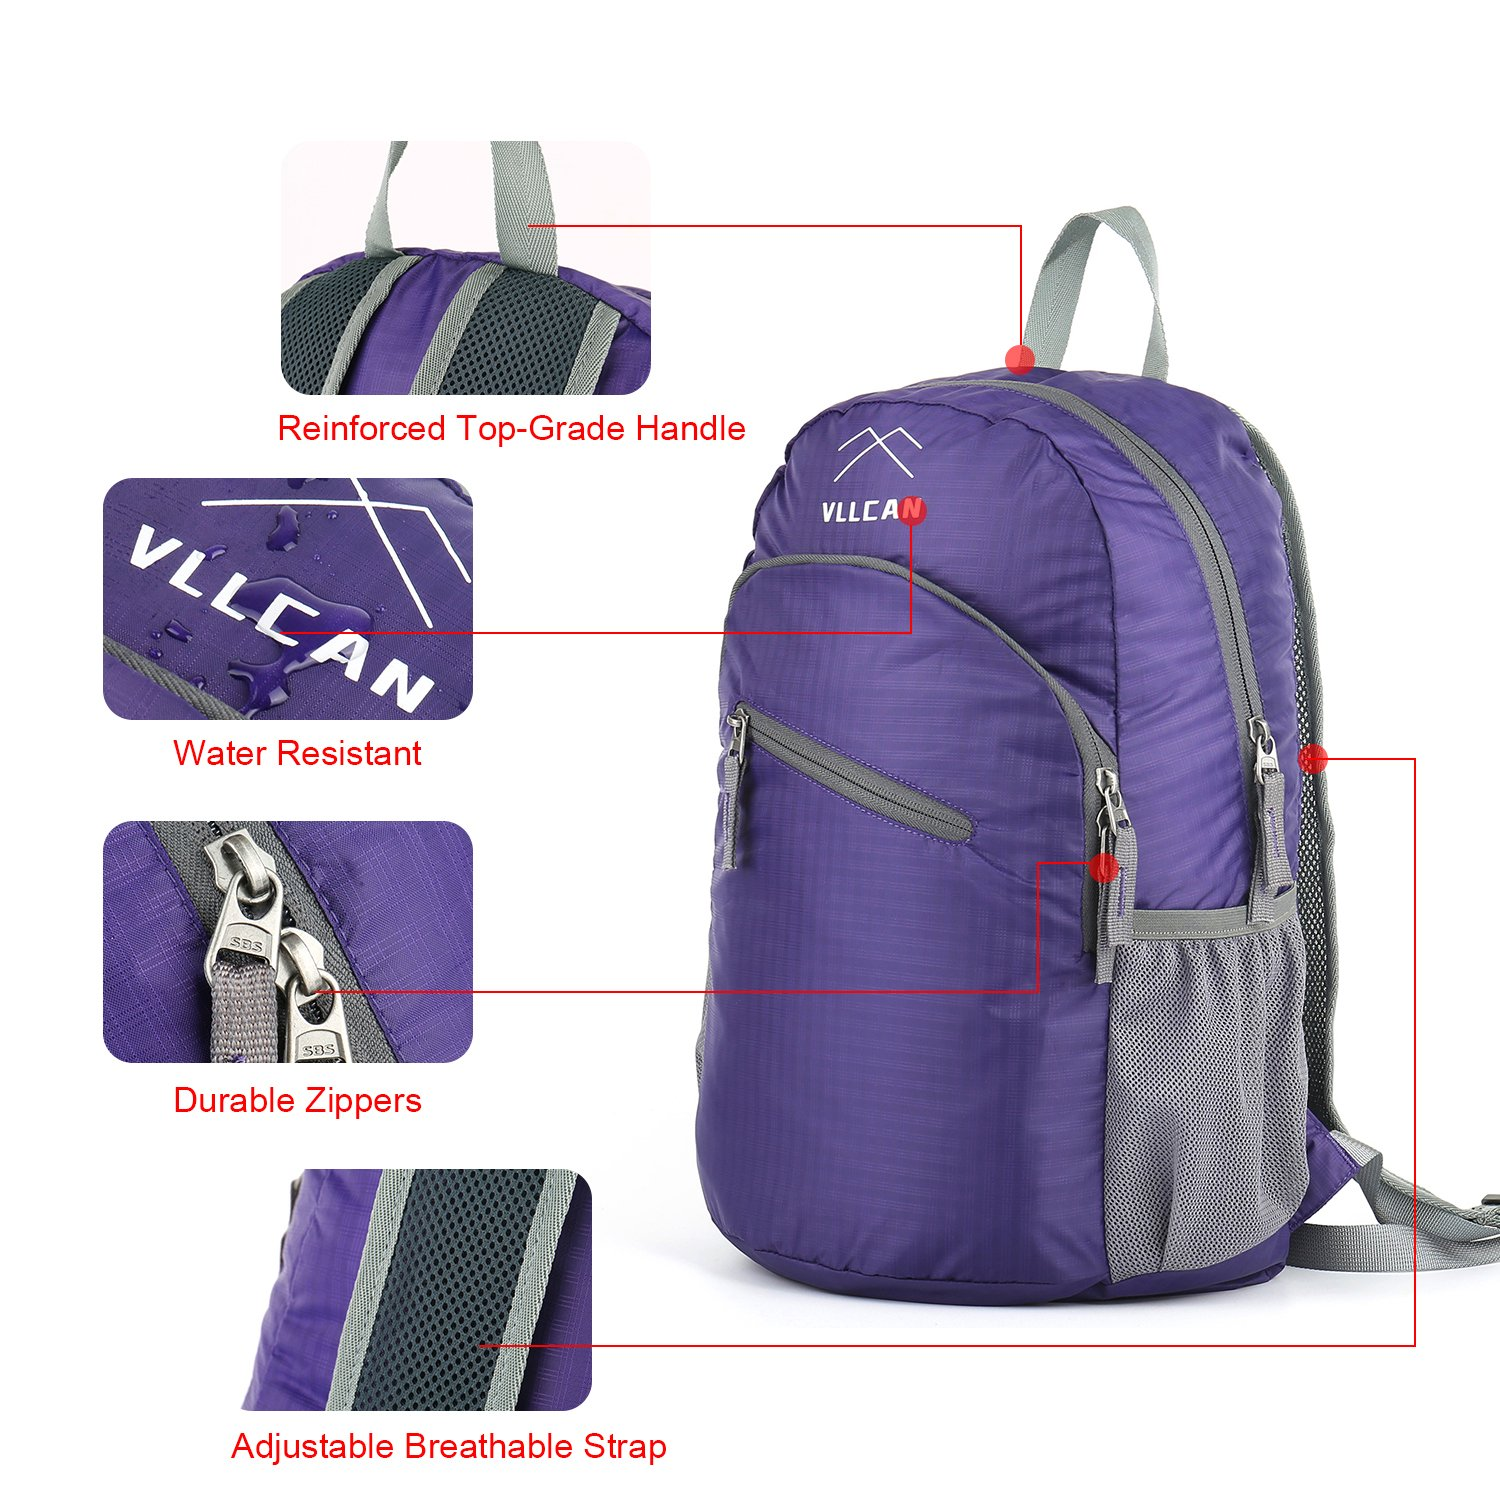 VLLCAN Lightweight Foldable Packable Backpack 20L//33L Handy Travel Daypack Water Resistant Hiking Backpack Camping Outdoor Travel